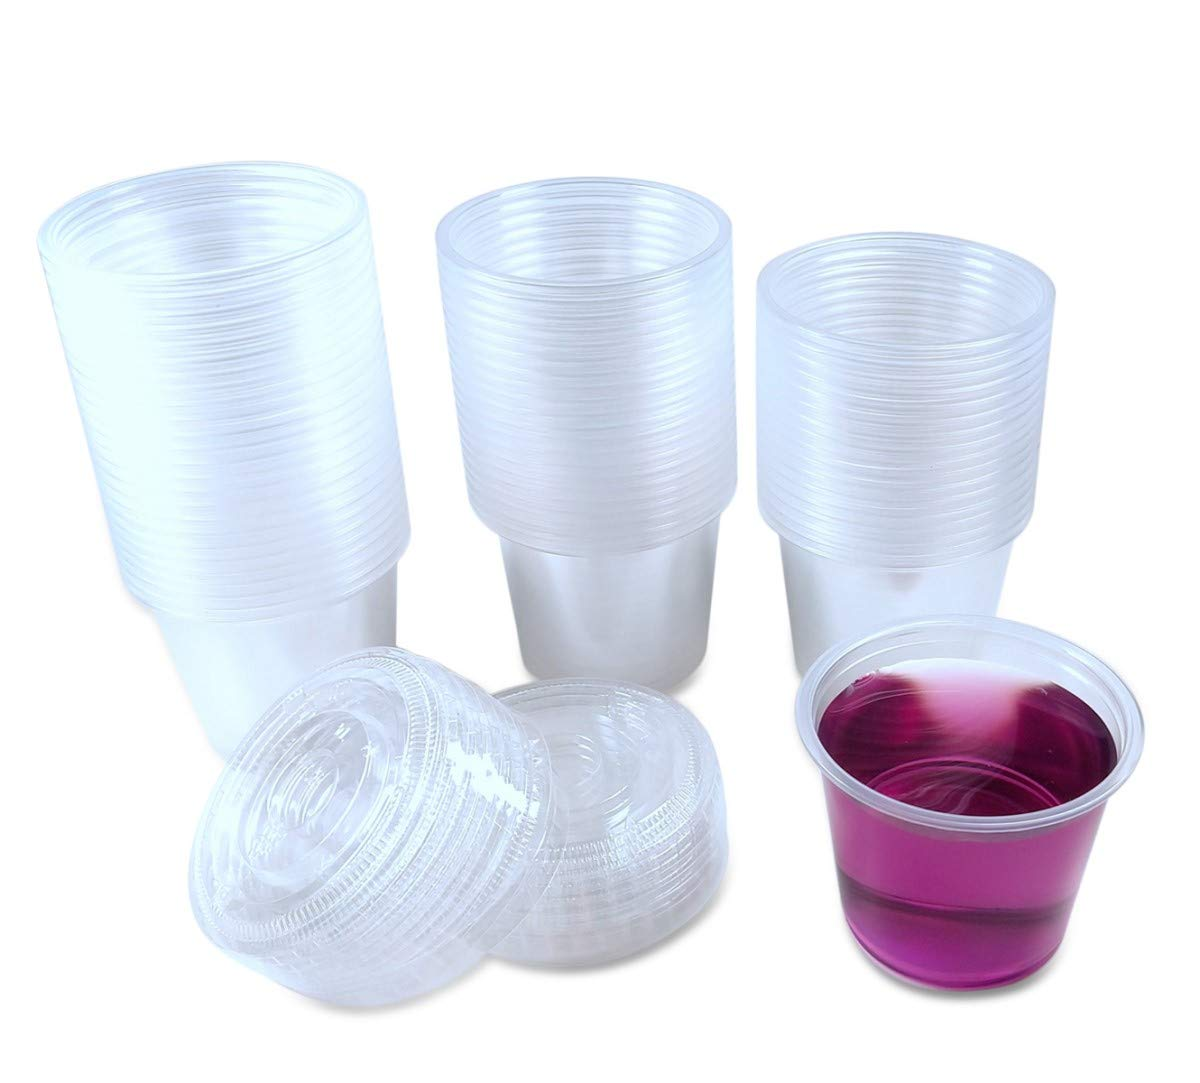 TashiBox 5.5oz-120 Sets Jello Shot Disposable Plastic Lids/Portion Souffle Cups, 5.5oz, Clear by TashiBox